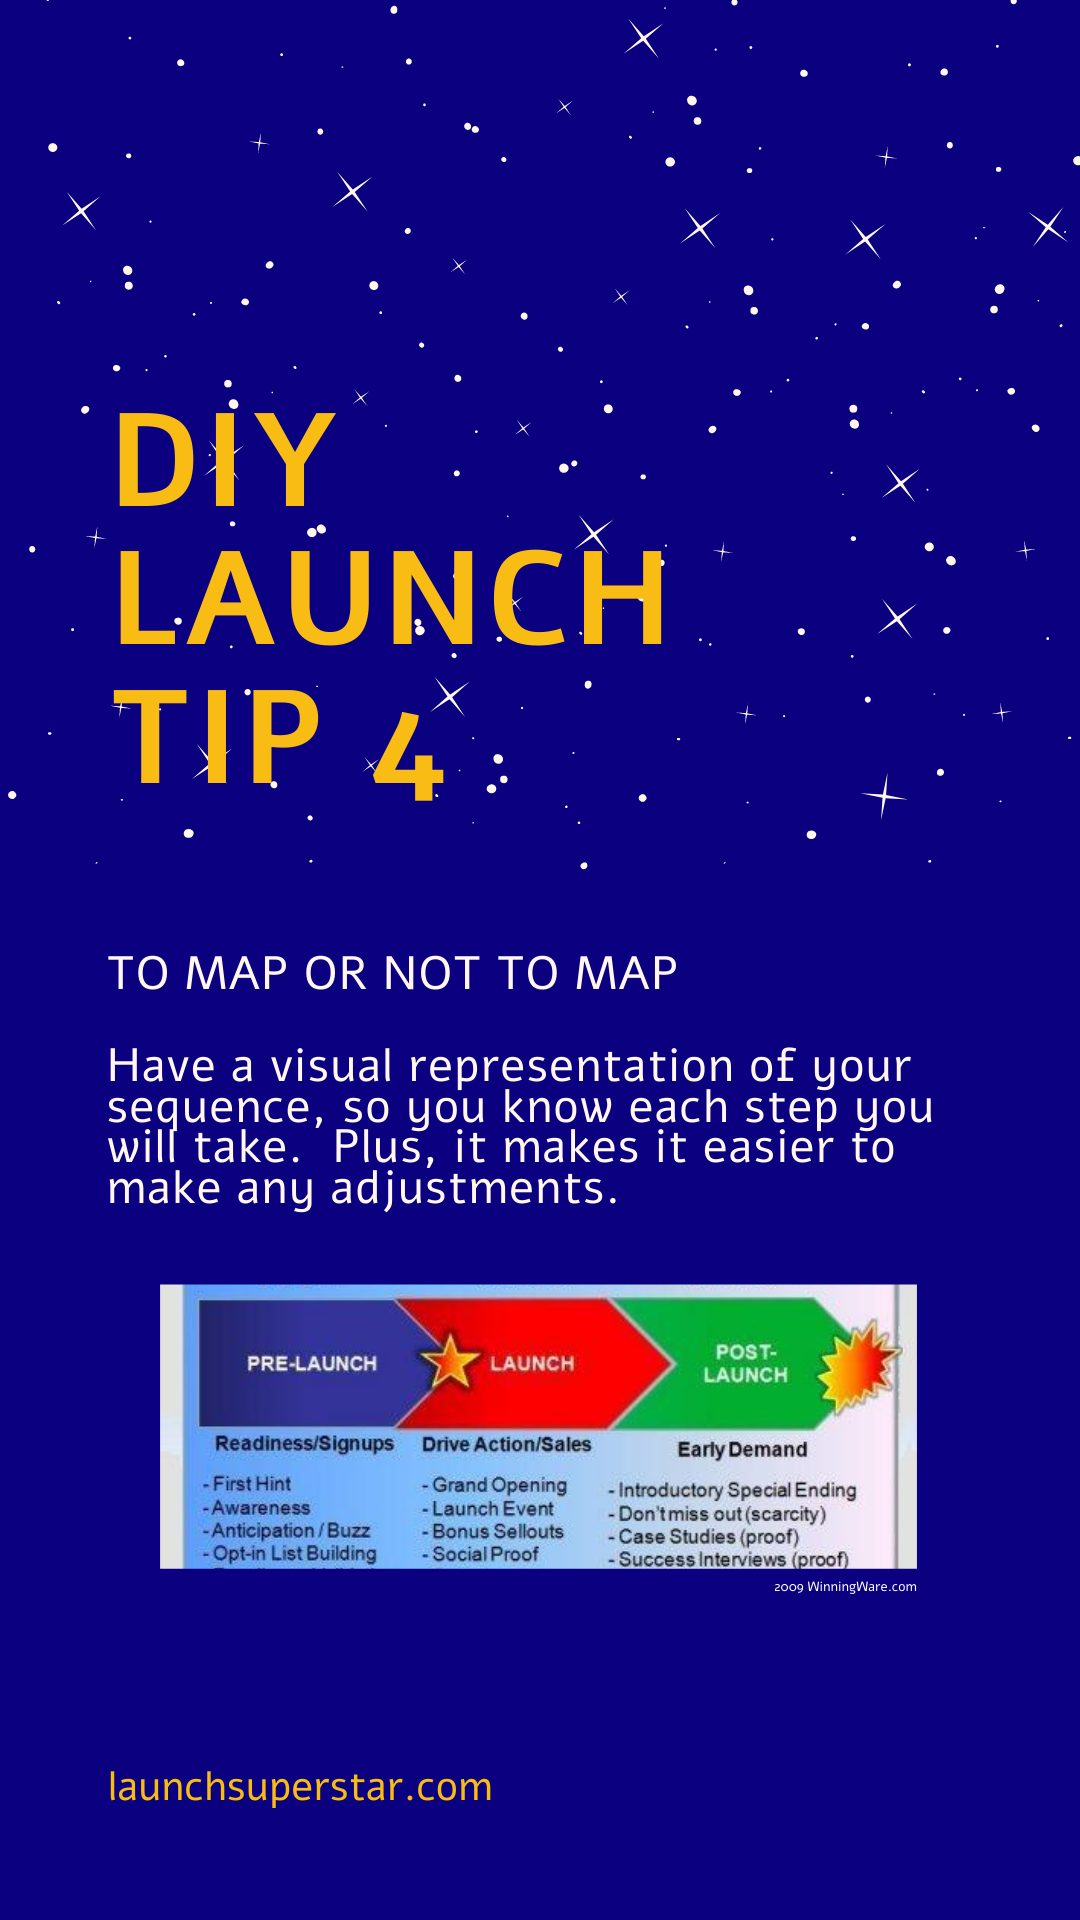 DIY Launch tip 4